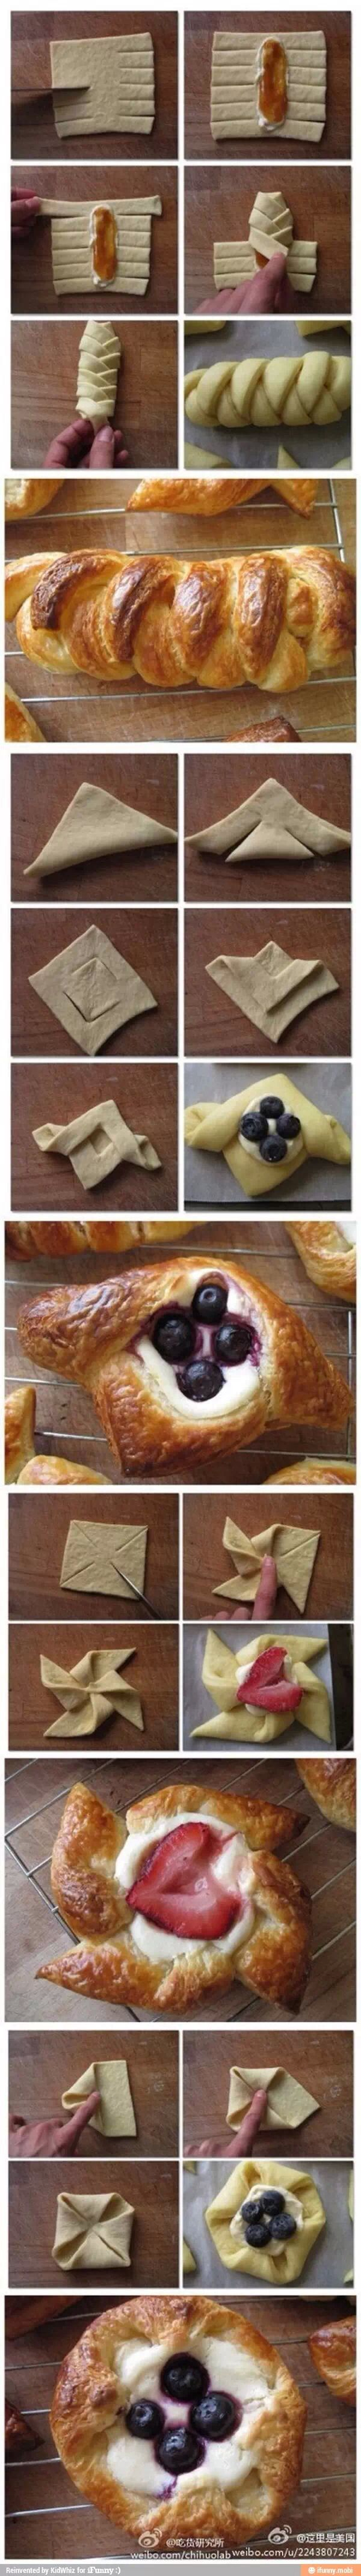 Ways to good pastries!